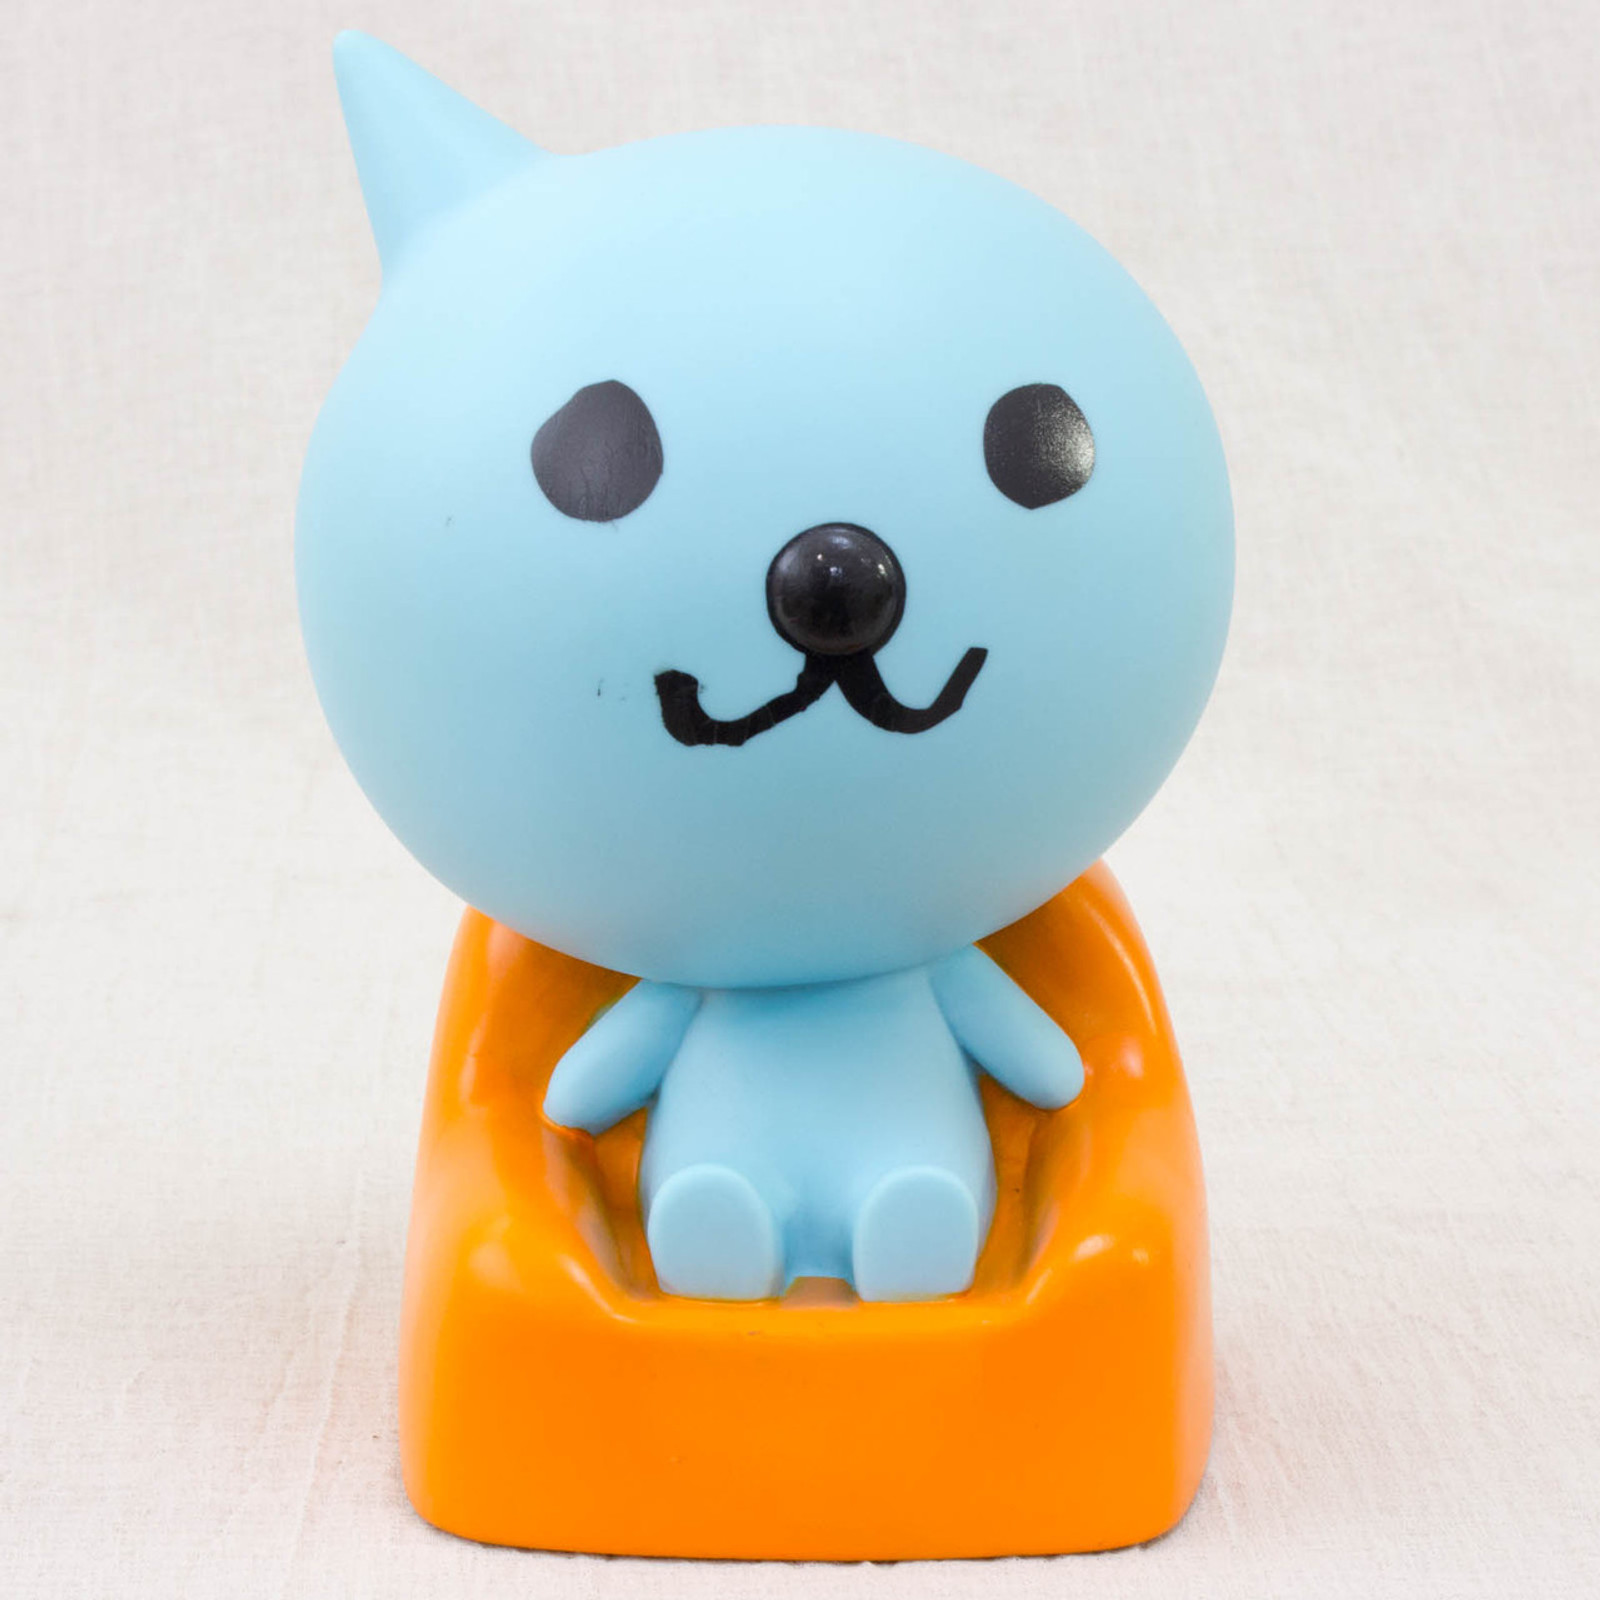 JUNK ITEM : QOO on Sofa Figure Coin Bank Yamazaki Japan Limited Product